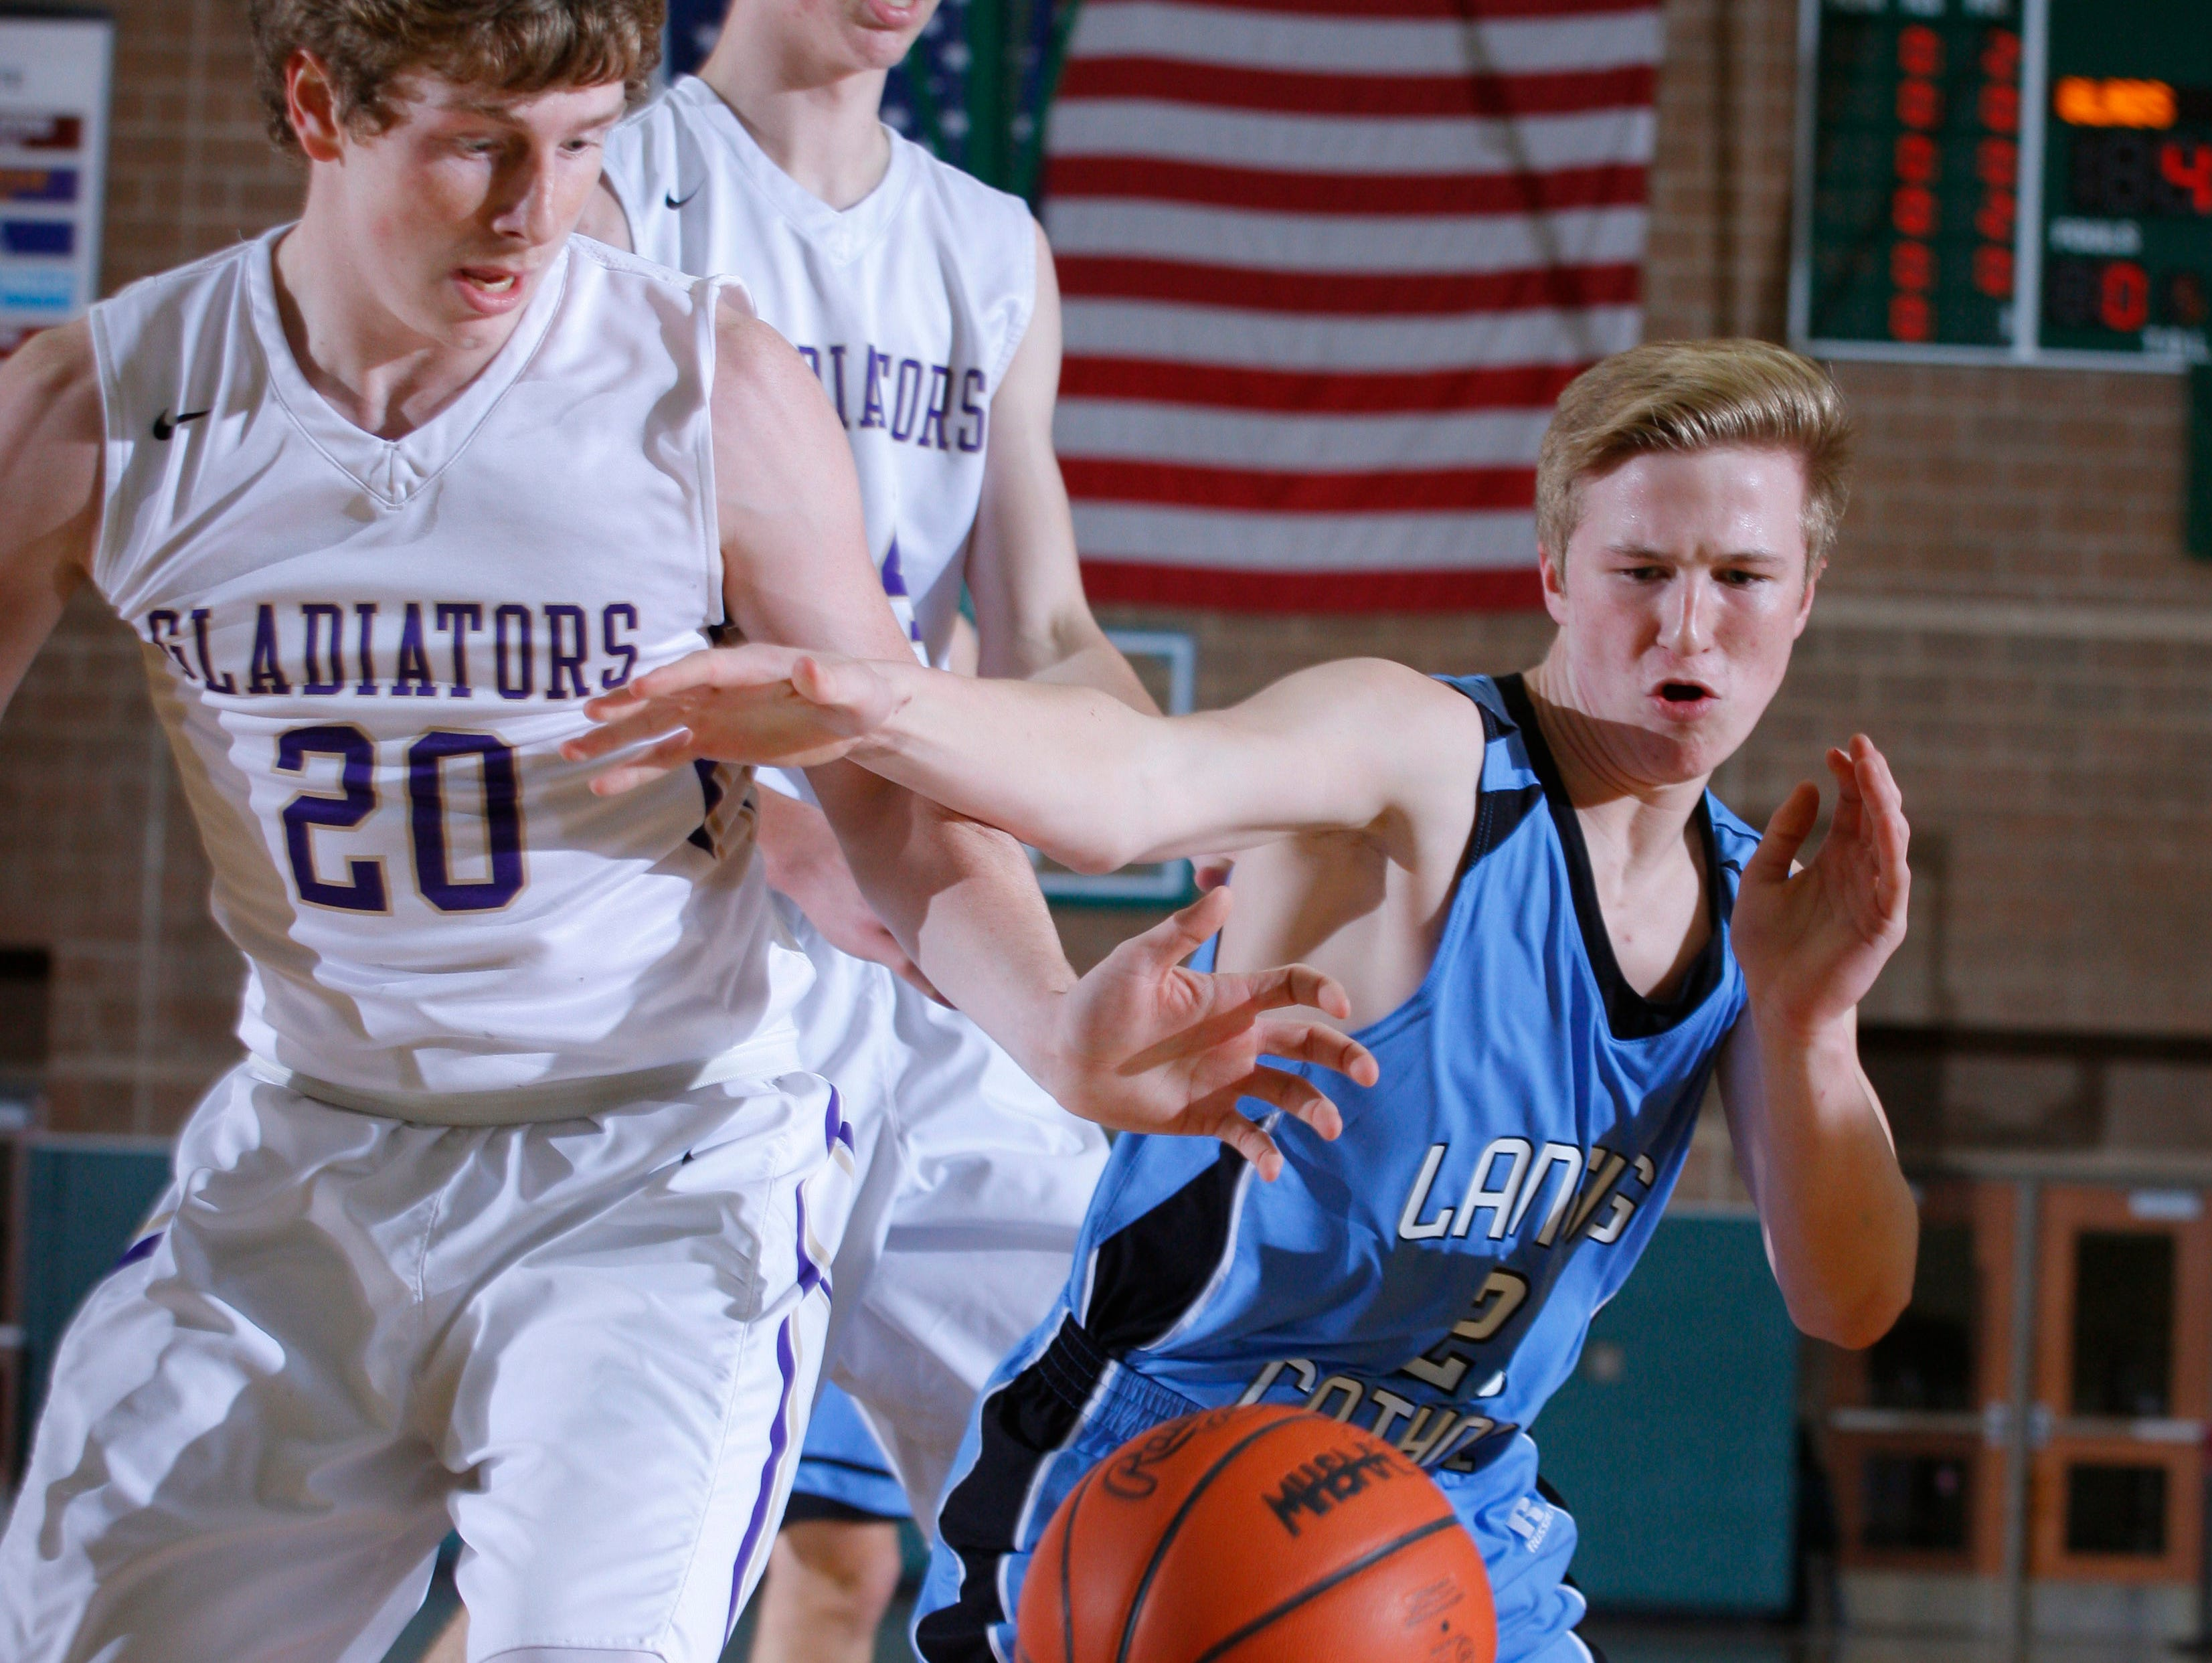 Fowlerville's Cam Brigham, left, and Lansing Catholic's Matthew Plaehn vie for the ball during their district game Monday, March 6, 2017, in East Lansing, Mich. Fowlerville won 66-52.